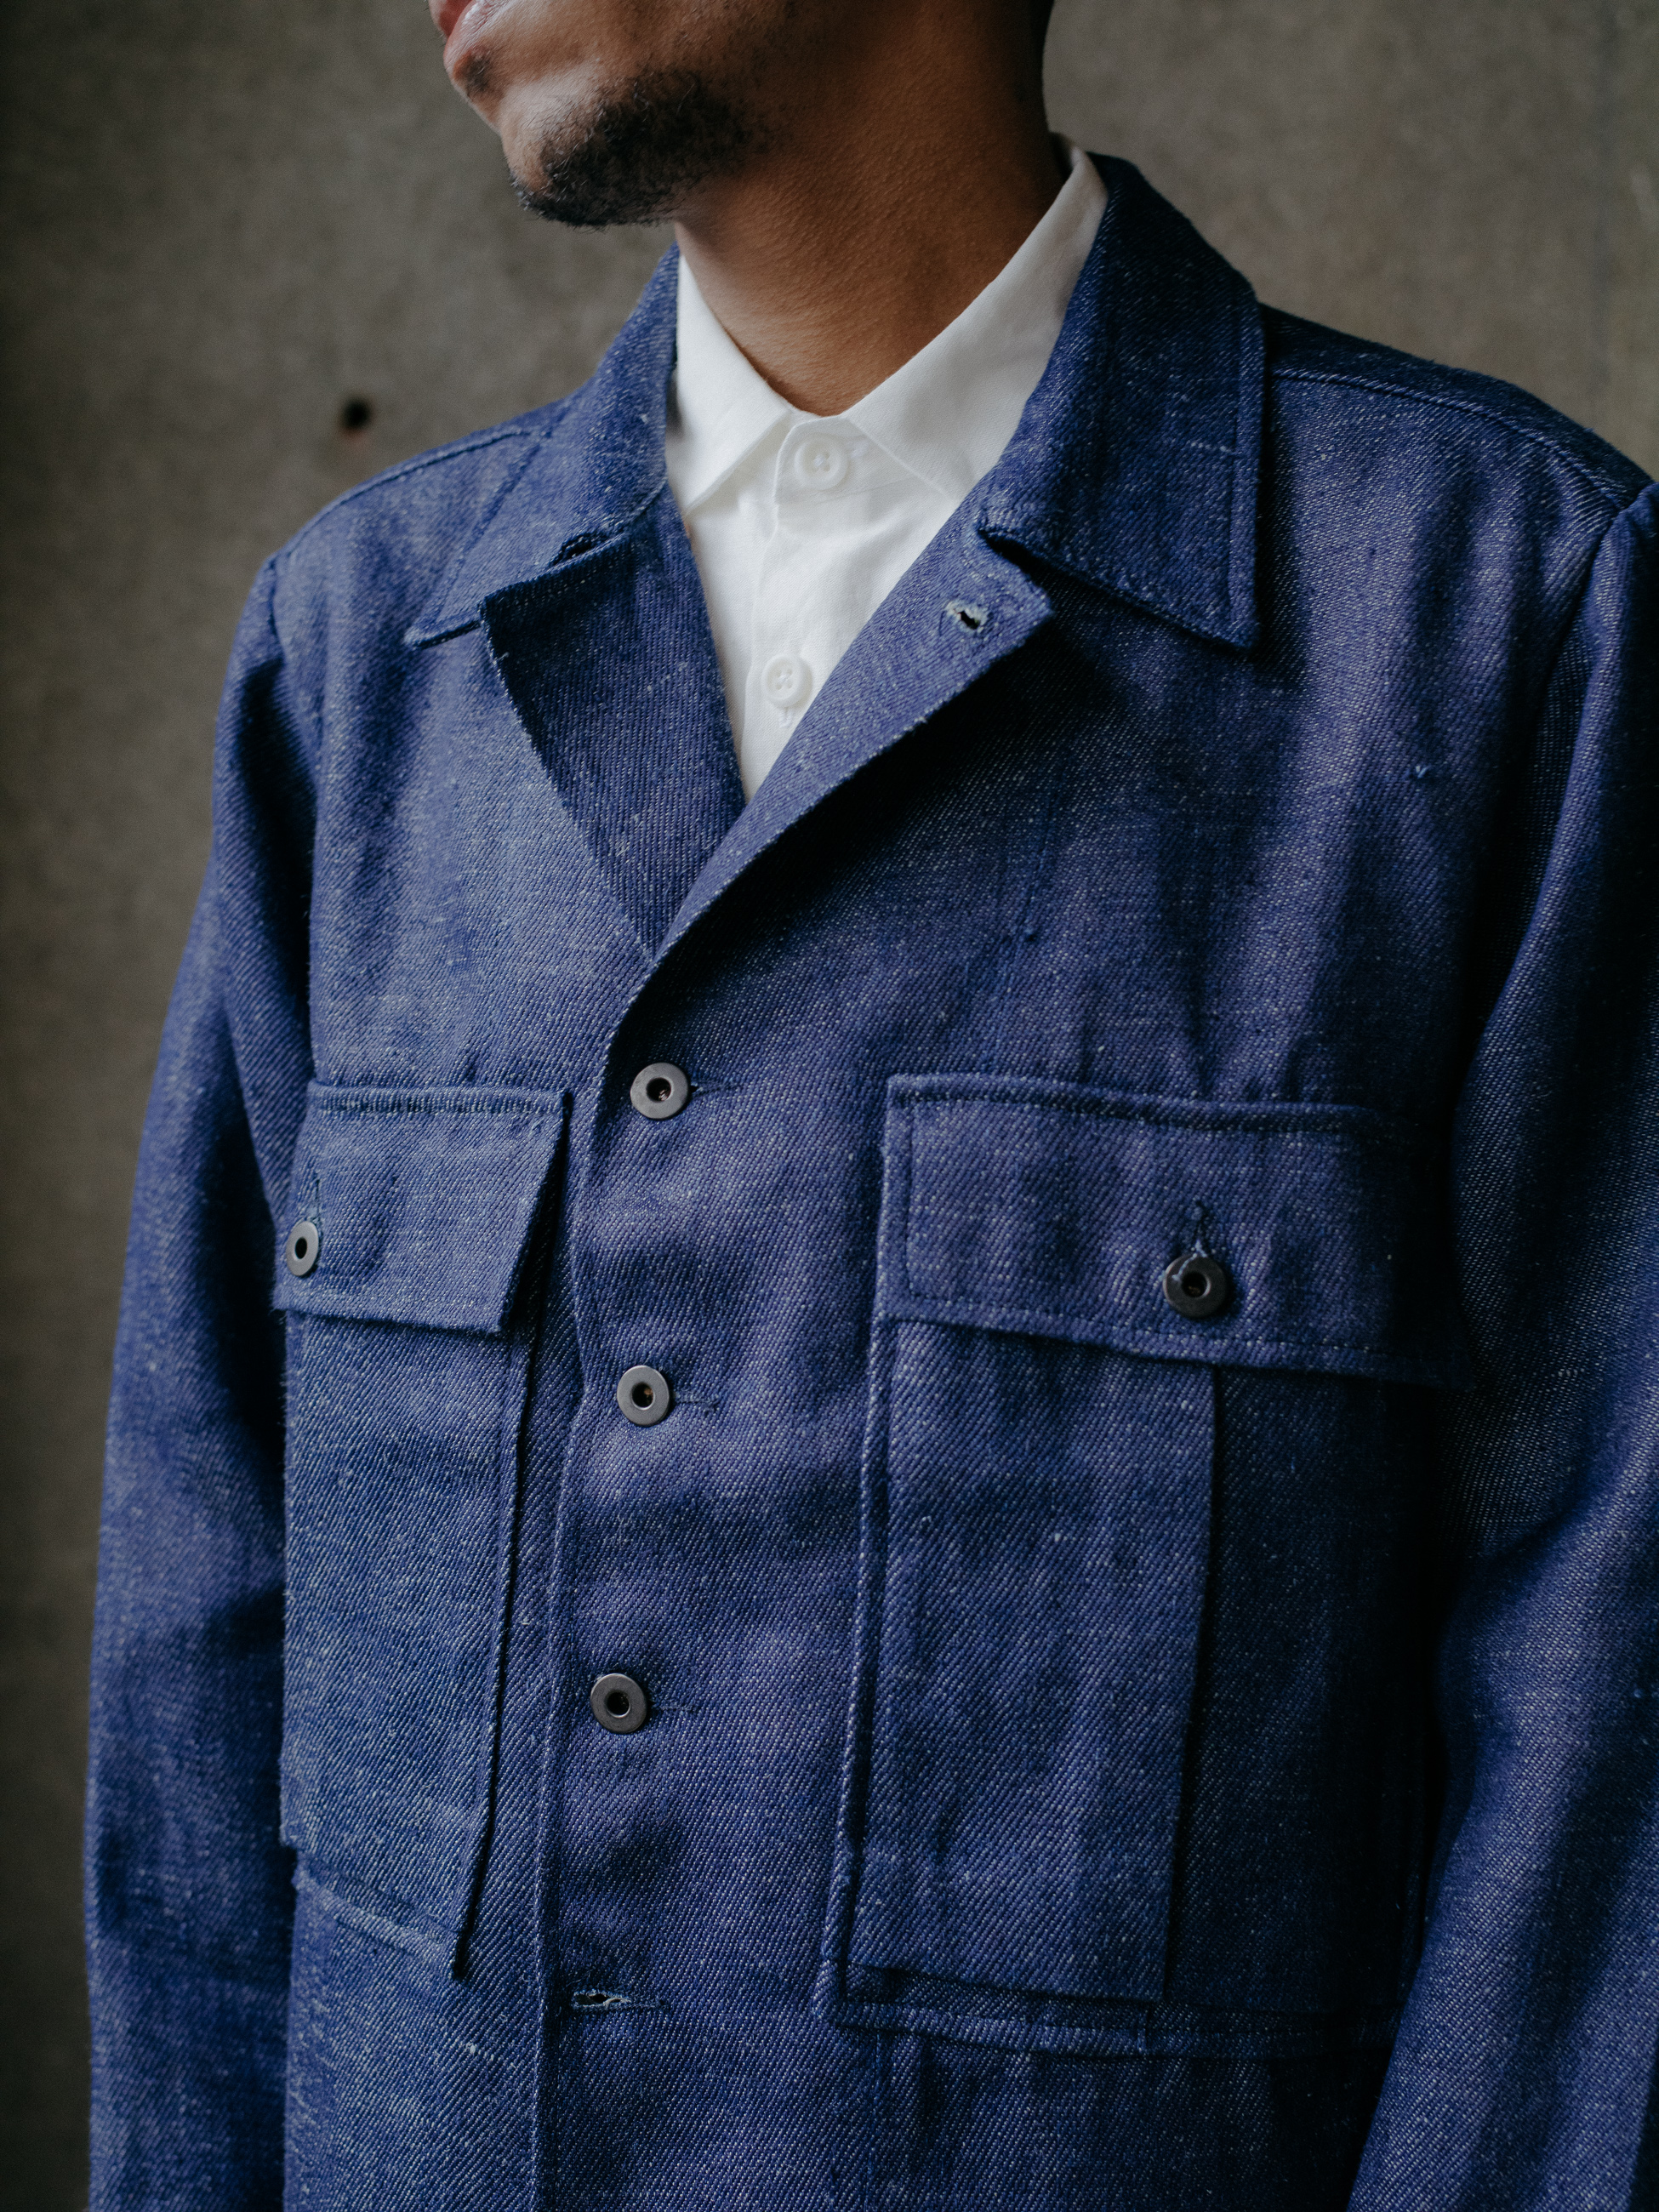 evan-kinori-bellow-pocket-jacket-hemp-denim-5